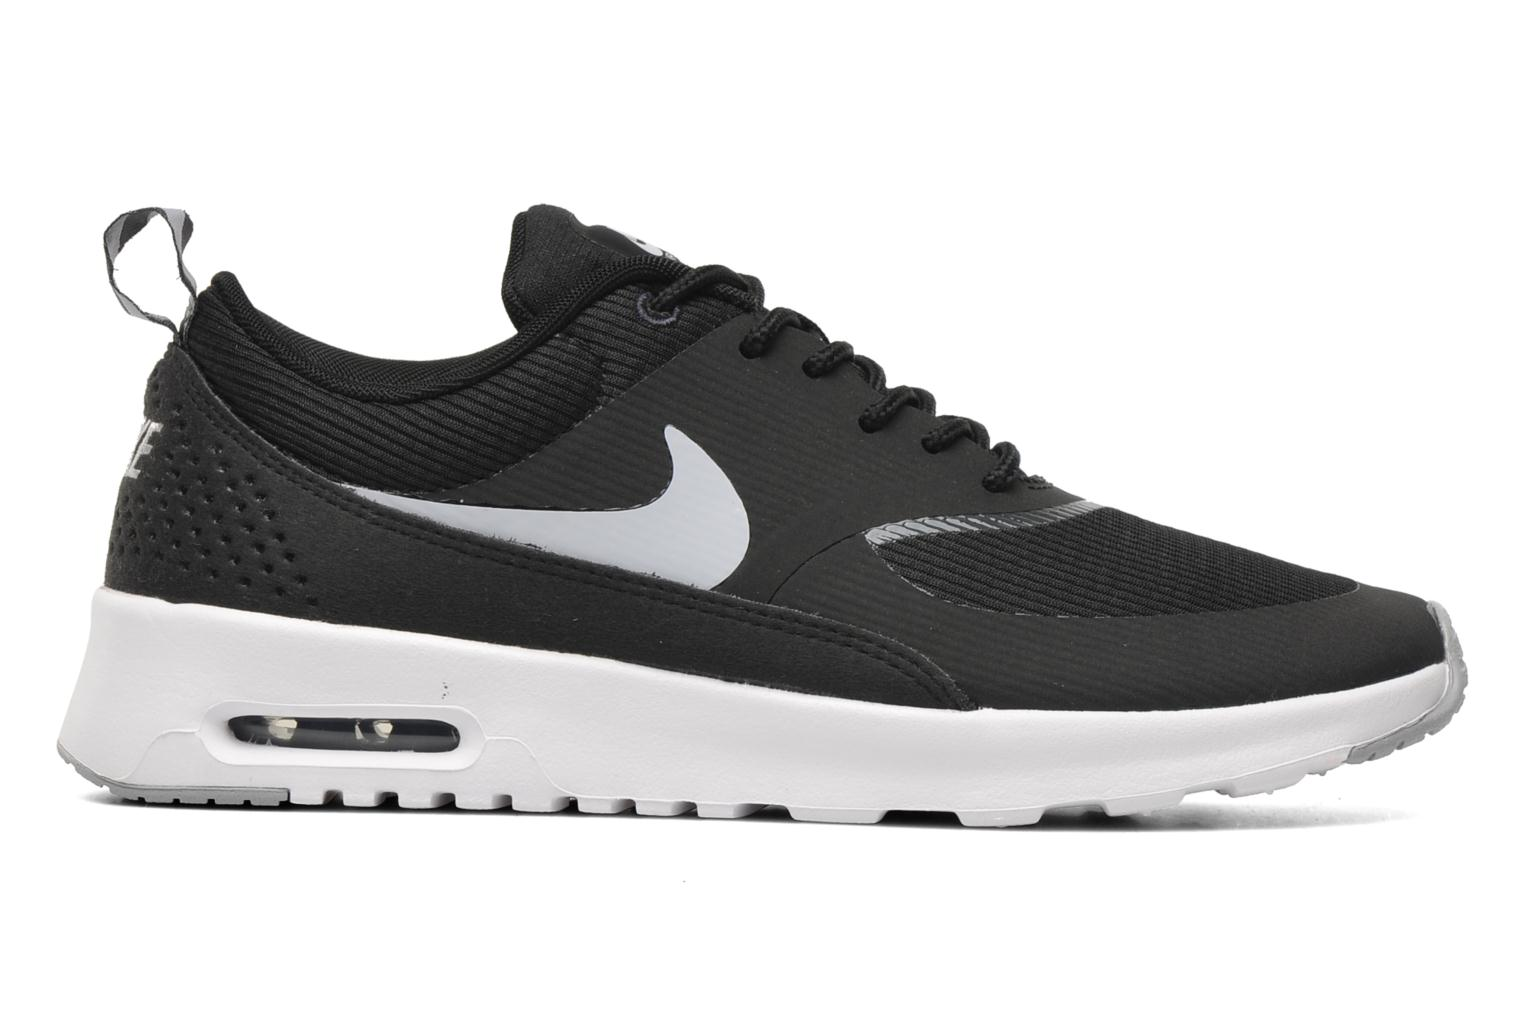 Wmns Nike Air Max Thea Black/Wolf Grey-Anthracite-White